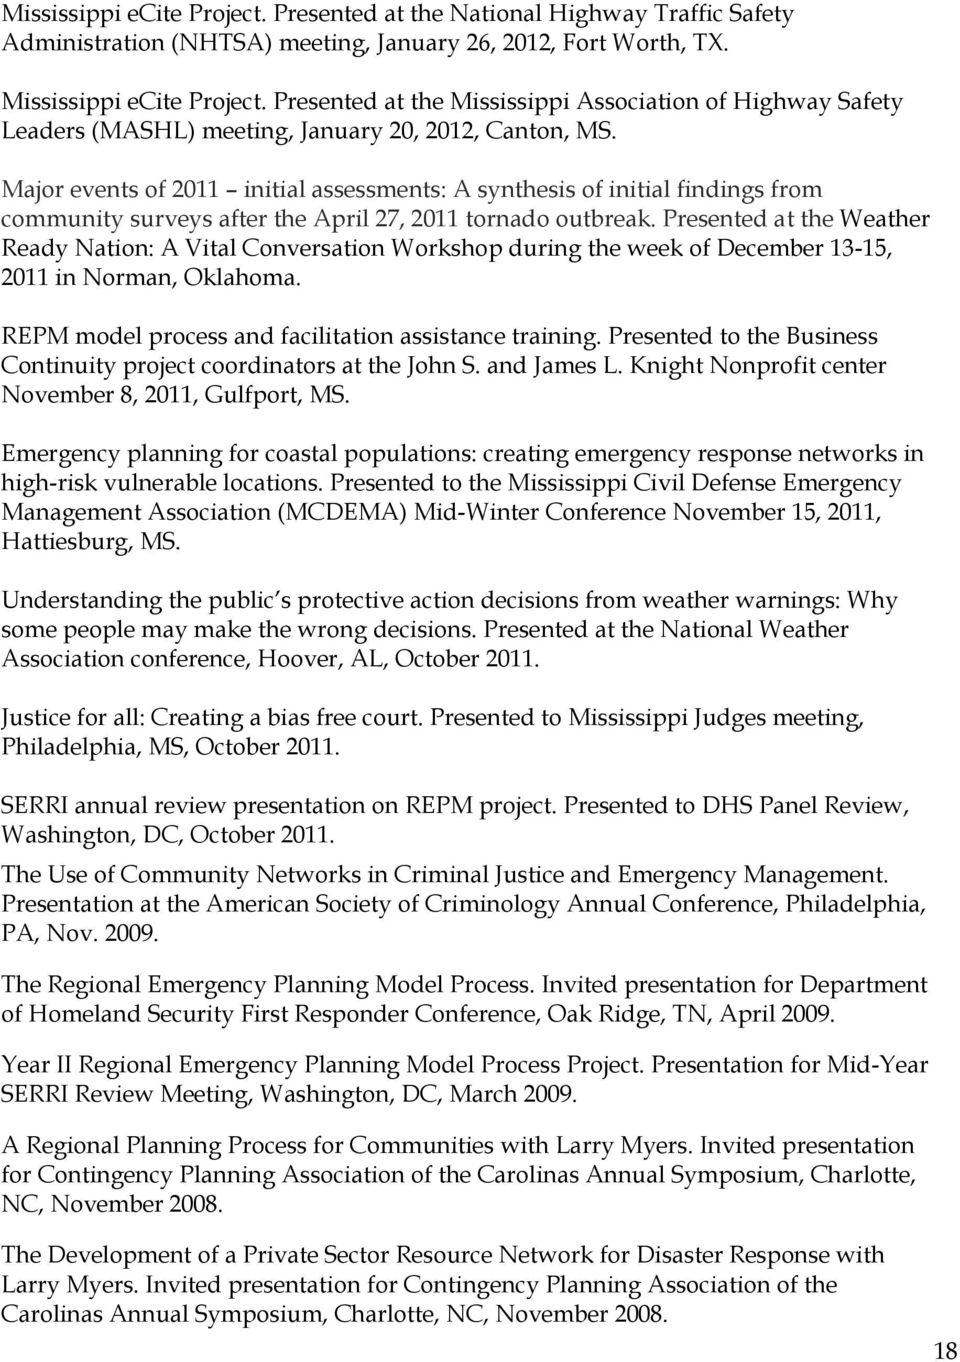 Major events of 2011 initial assessments: A synthesis of initial findings from community surveys after the April 27, 2011 tornado outbreak.